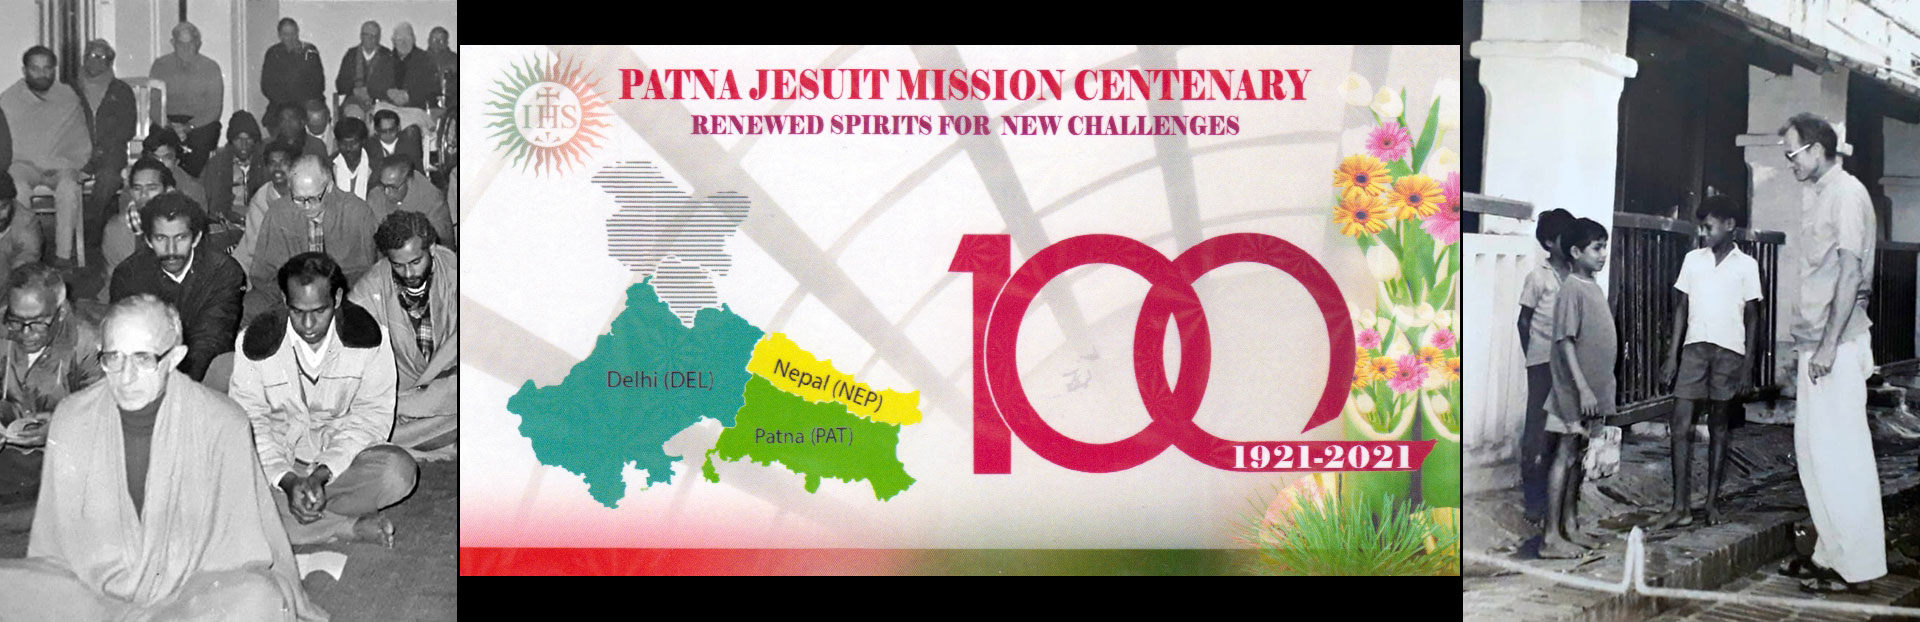 The history of the Patna Jesuits in a nutshell? 100 years of blessings!